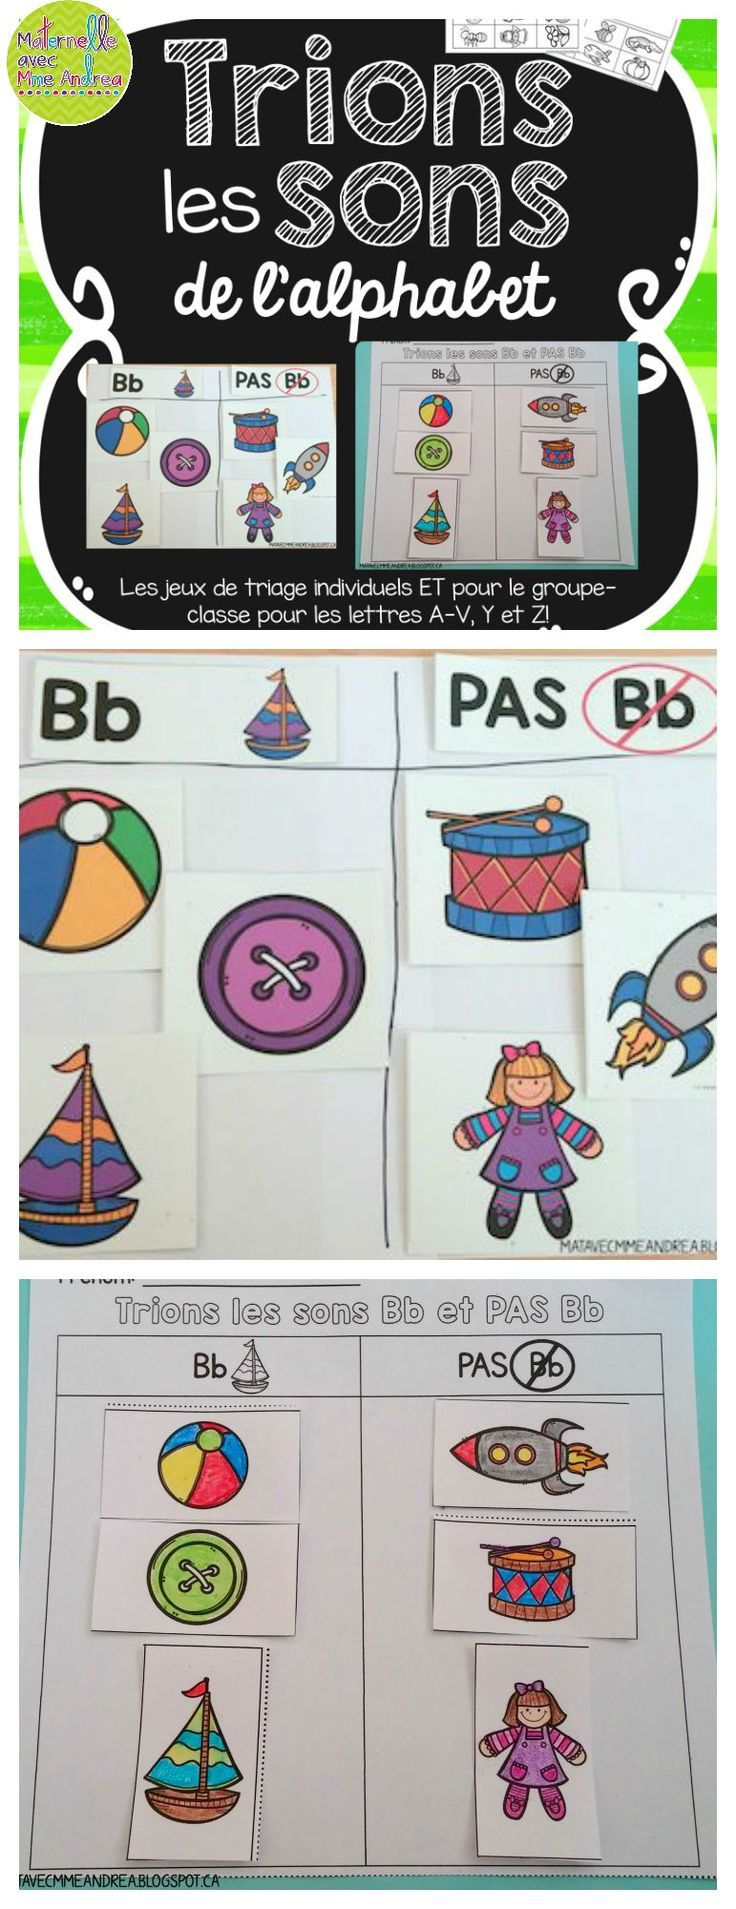 FRENCH Alphabet sorts - get your students working on their conscience phonologique skills by having them listen for and sort by beginning sounds! Includes whole group and individual sorts for each letter of the alphabet (except W and X)